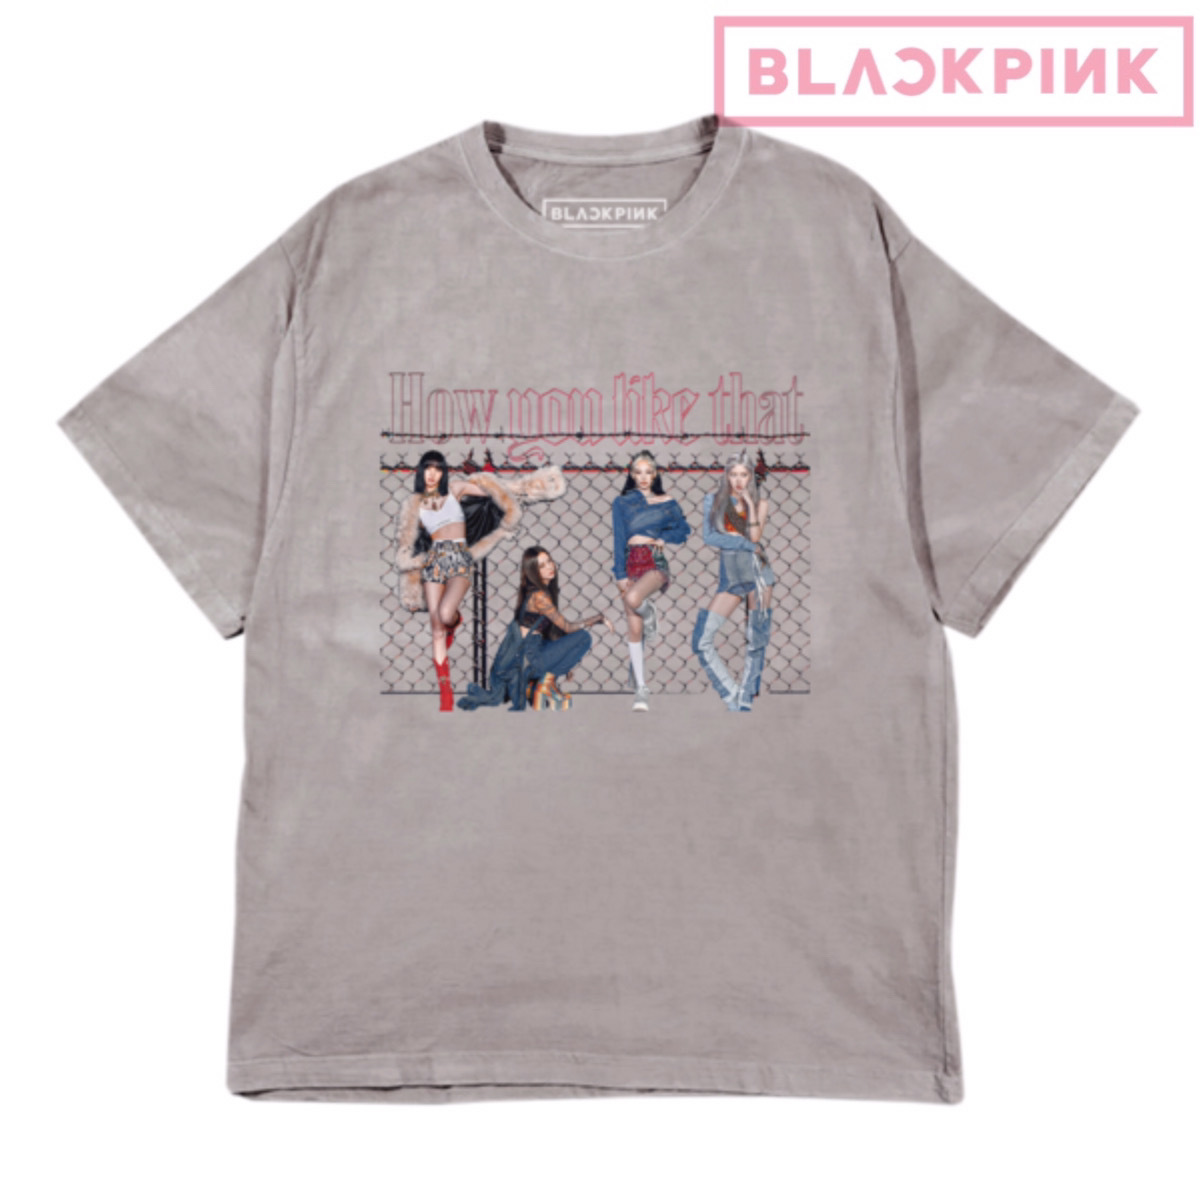 shop blackpink clothing